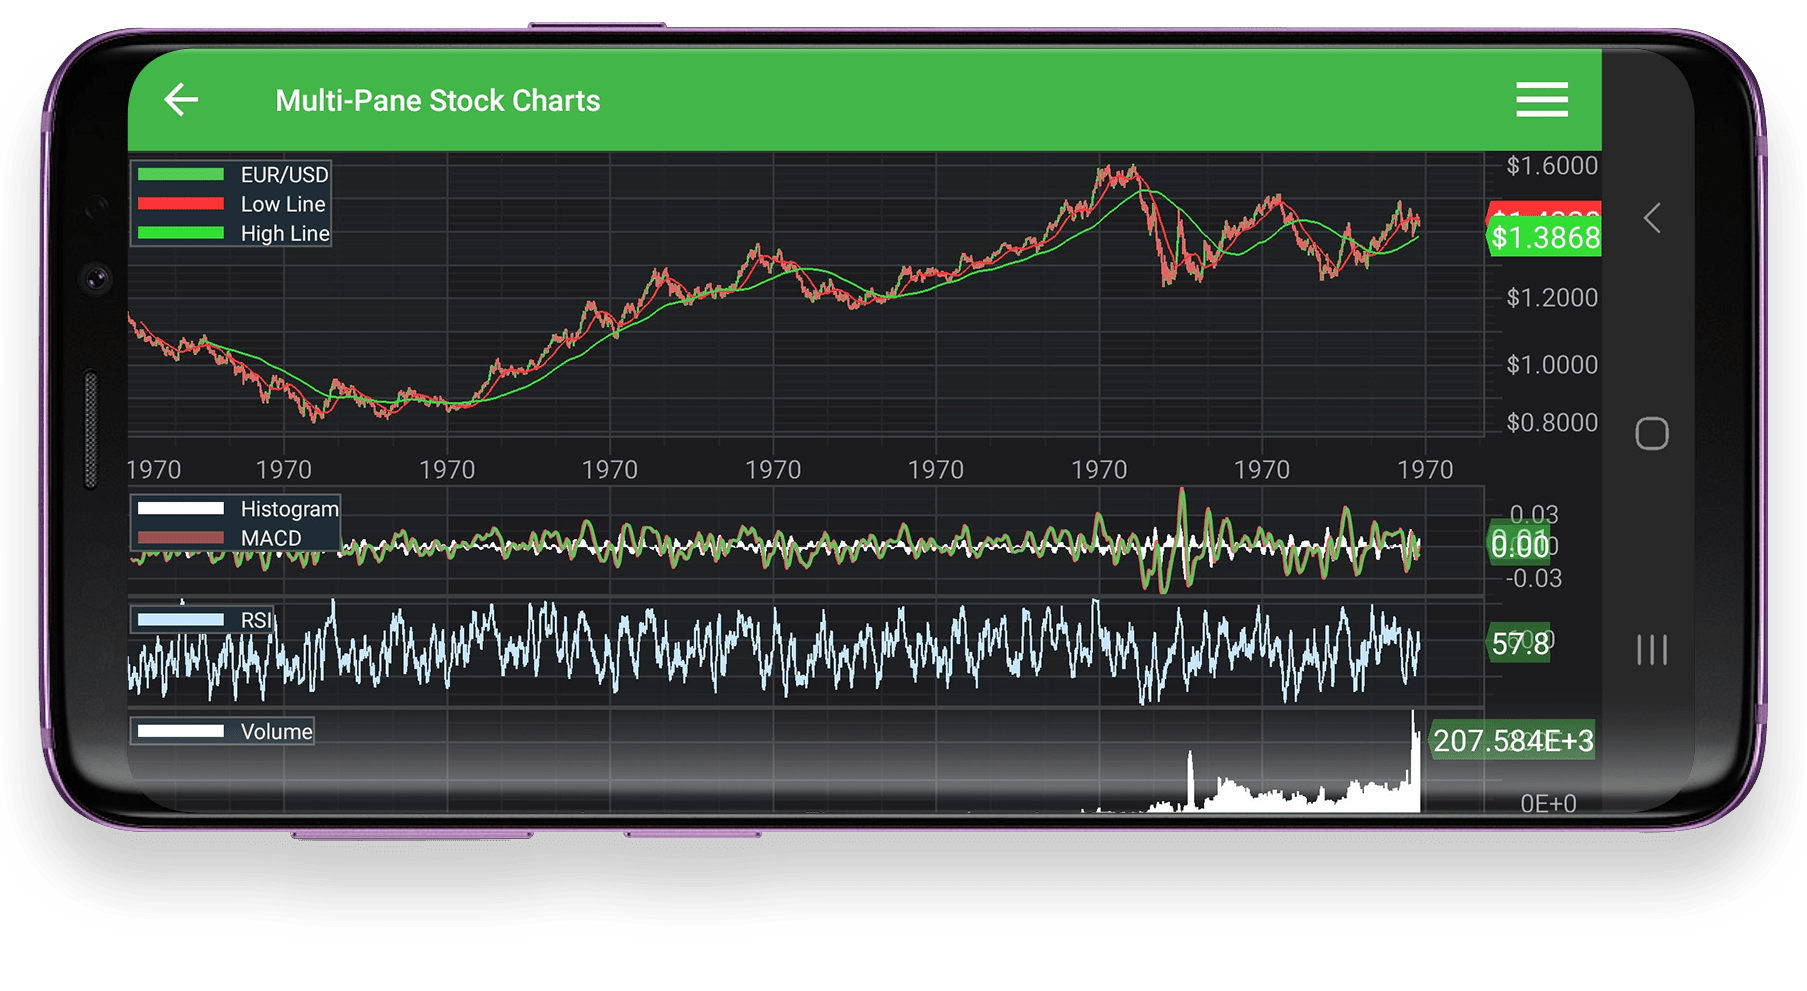 Android Multi-Pane Stock Charts Example